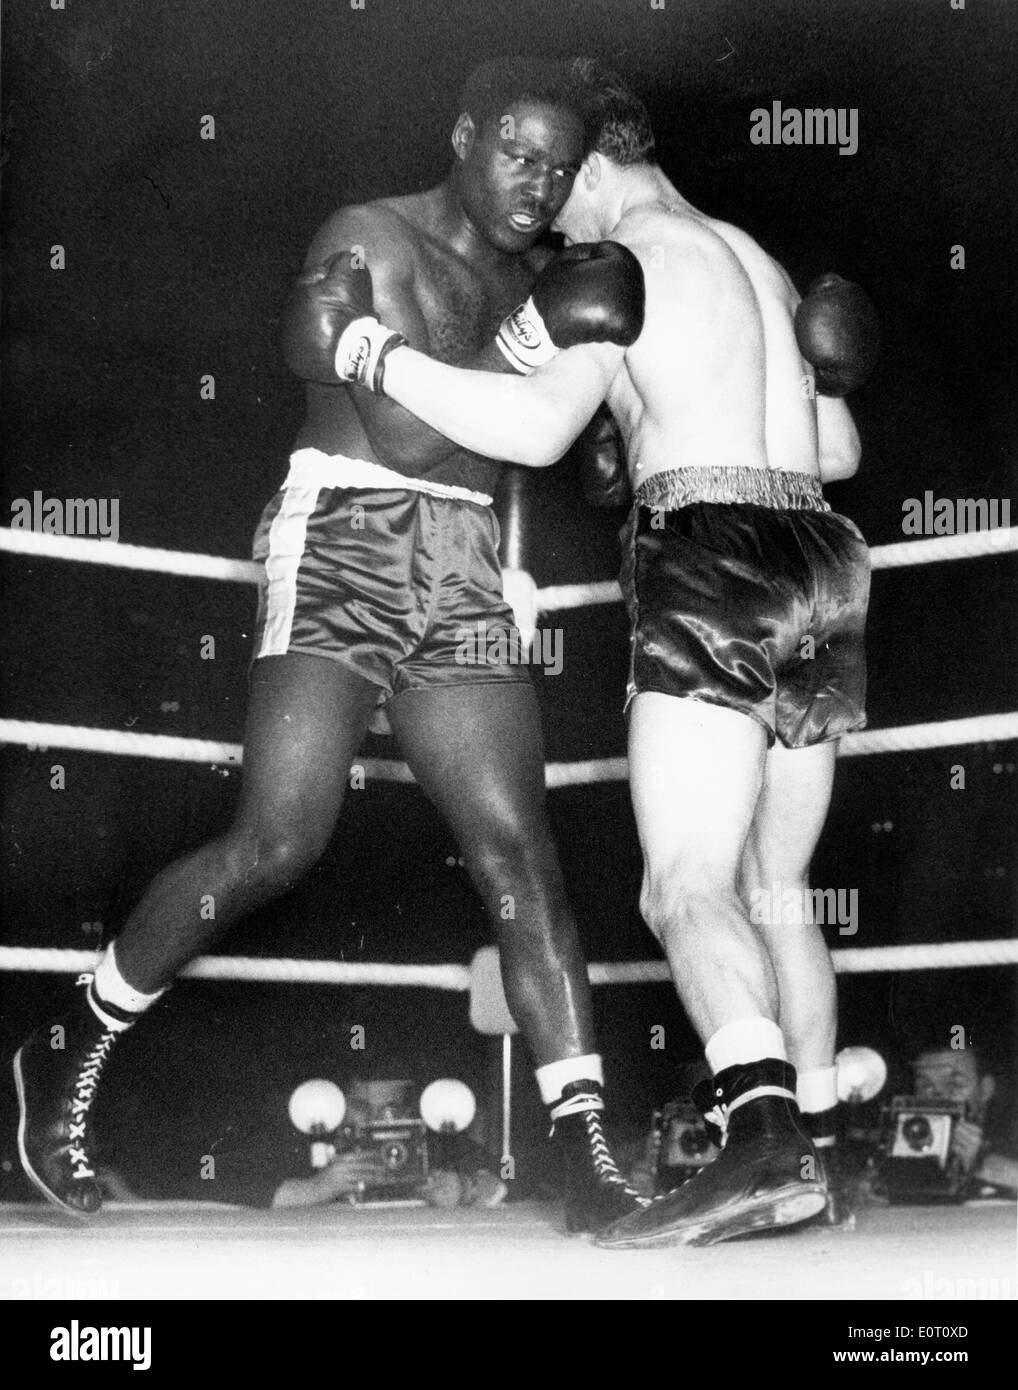 Boxer Ezzard Charles during a fight Stock Photo